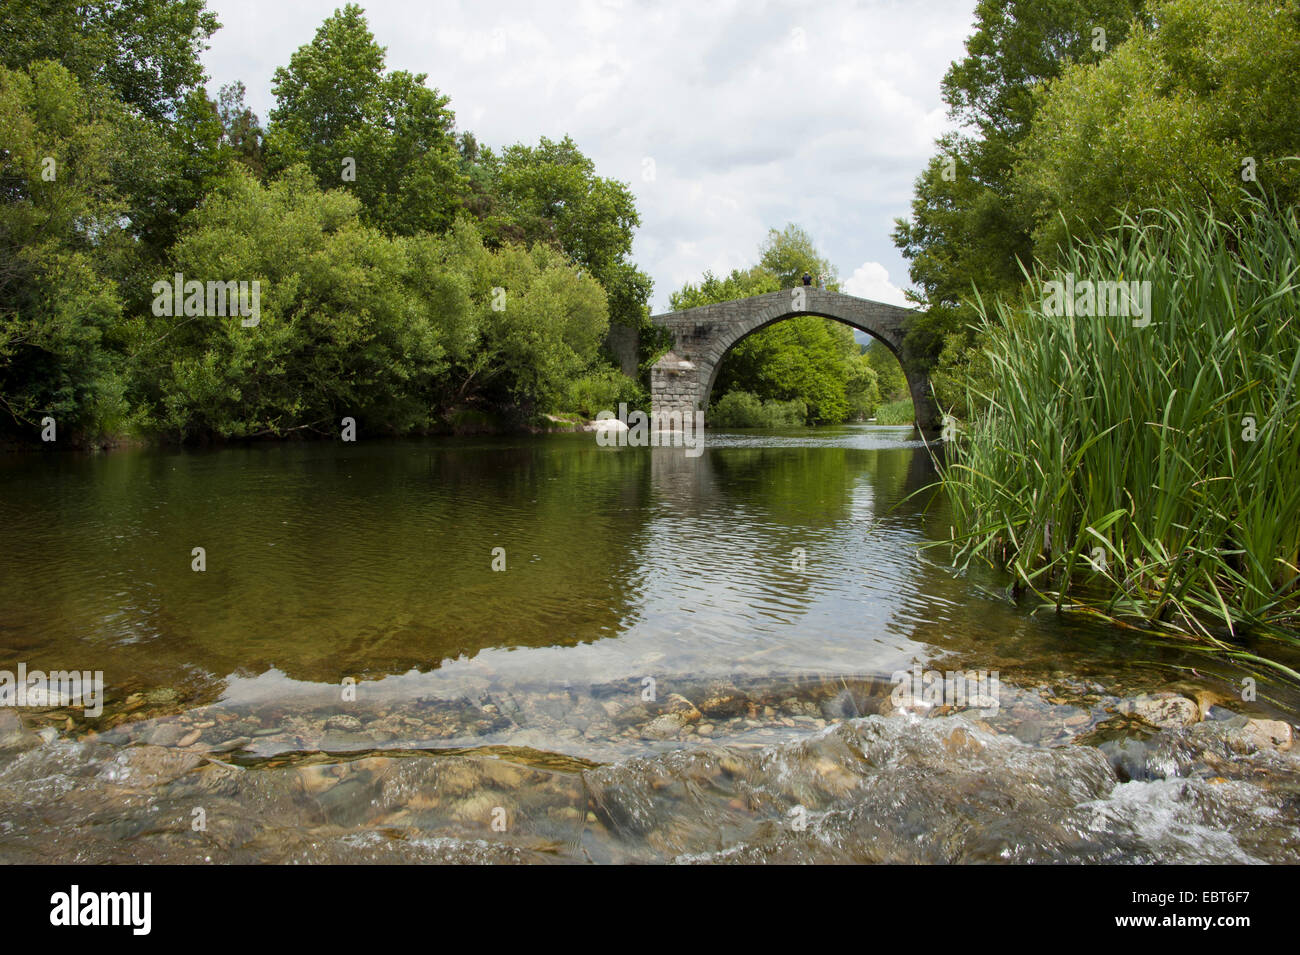 Genoese bridge, Spin a Cavallu, France, Corsica - Stock Image